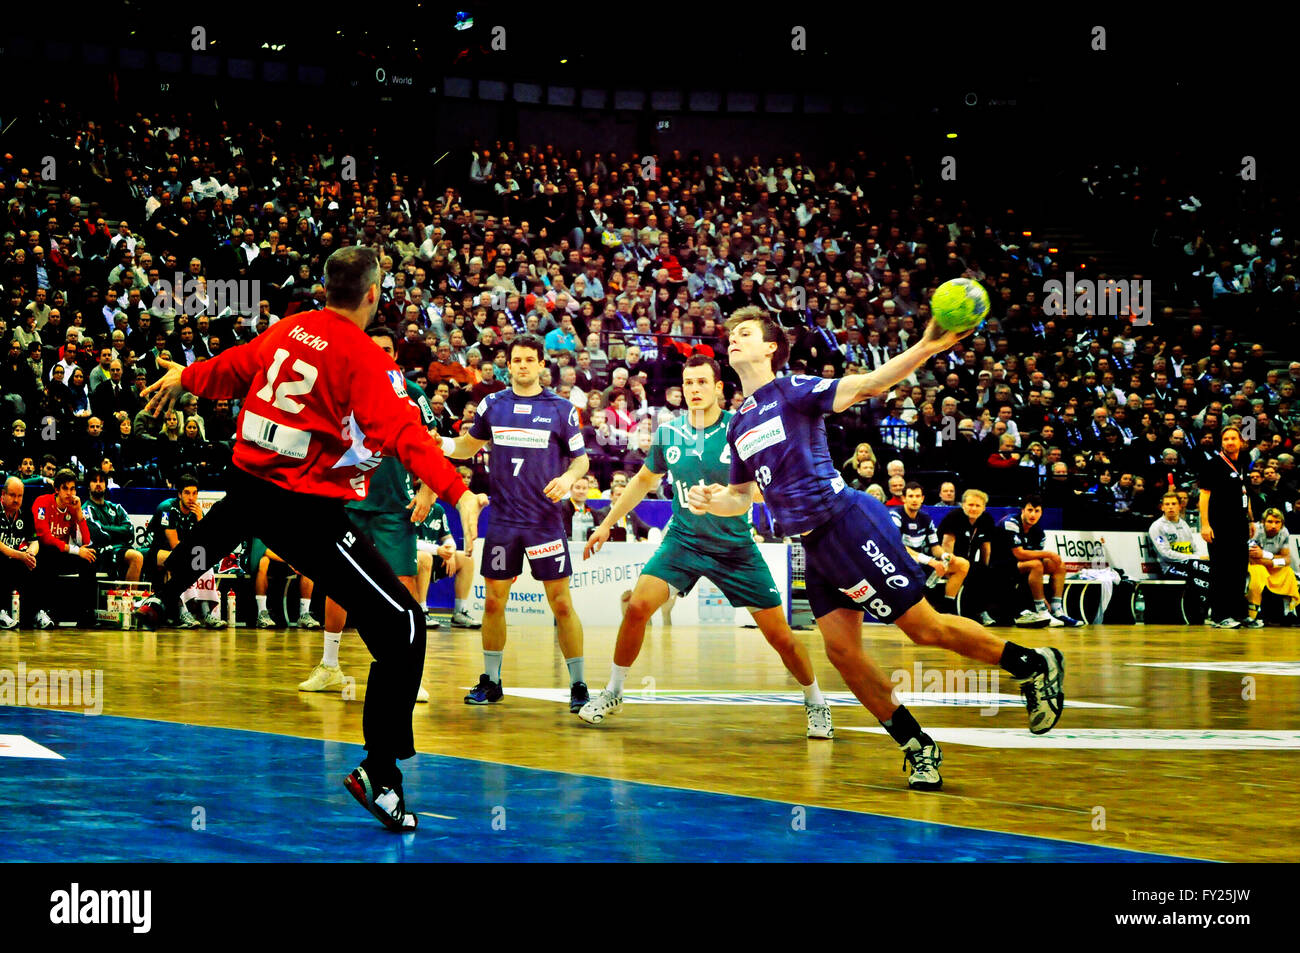 hsv hamburg handball